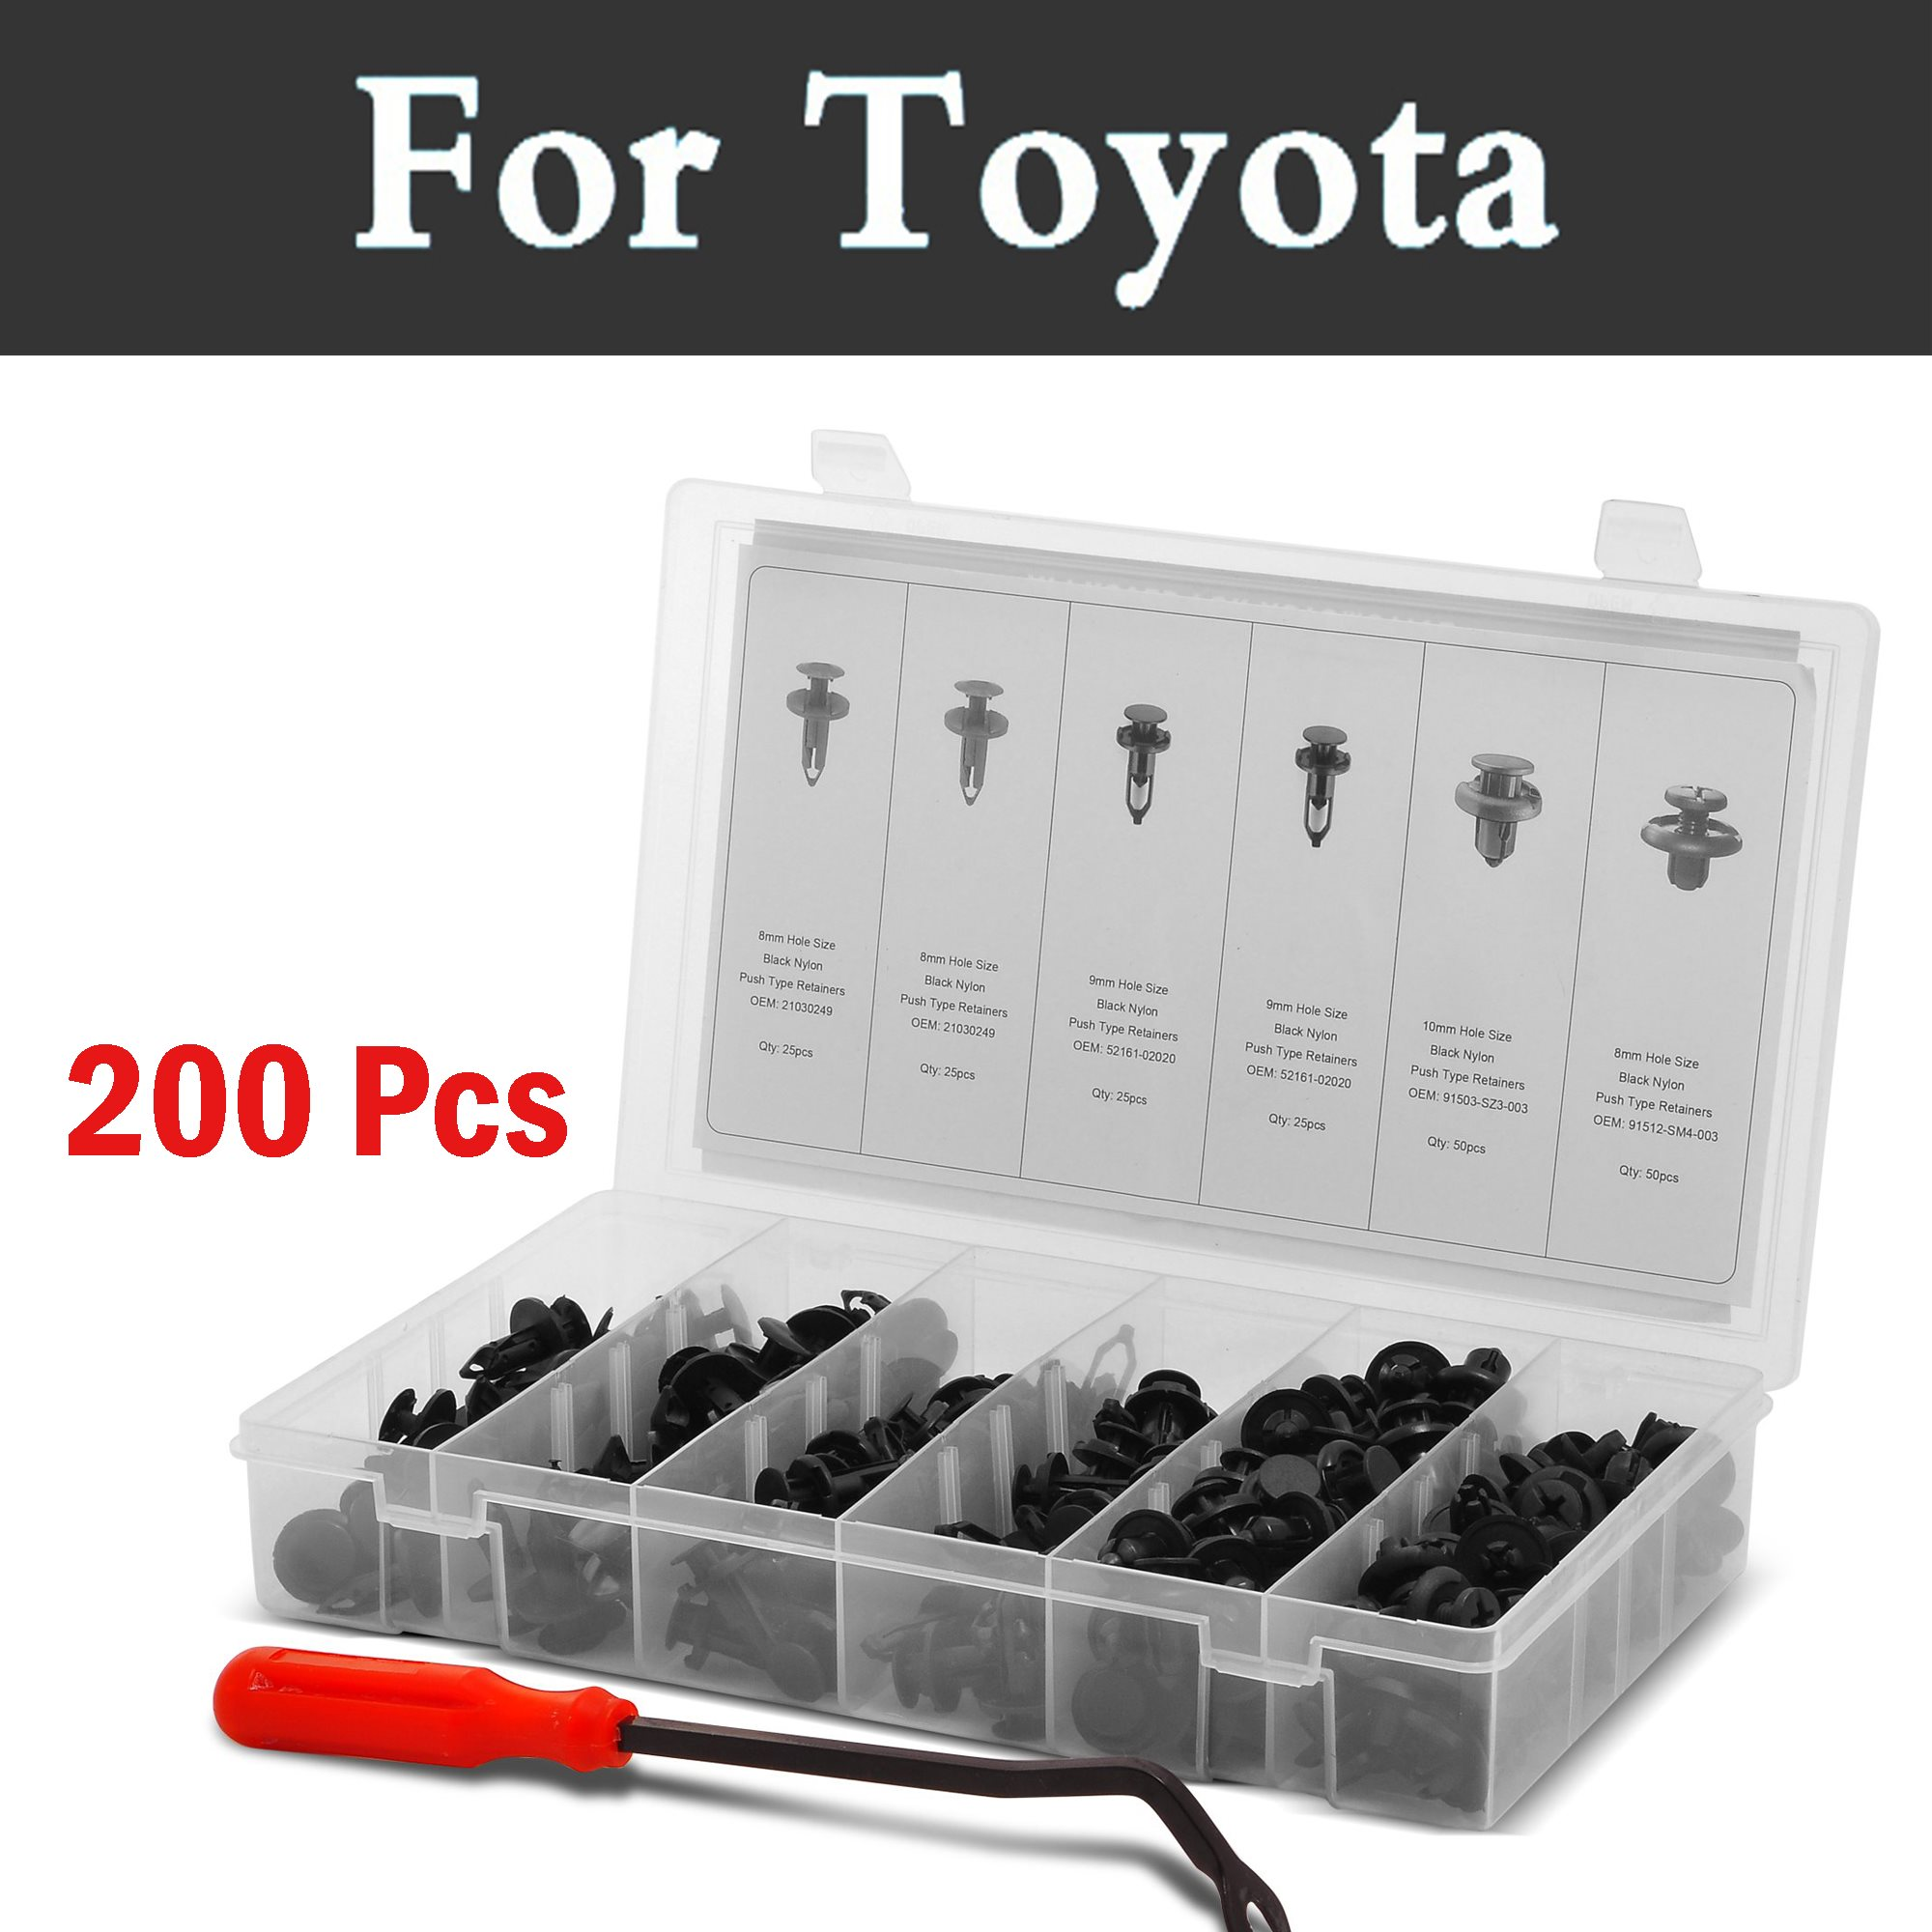 200pcs Car Push Pin Rivet Trim Clip Panel Body Interior Assortment Set For Toyota Hilux Surf Iq Ist Kluger Land Cruiser Prado